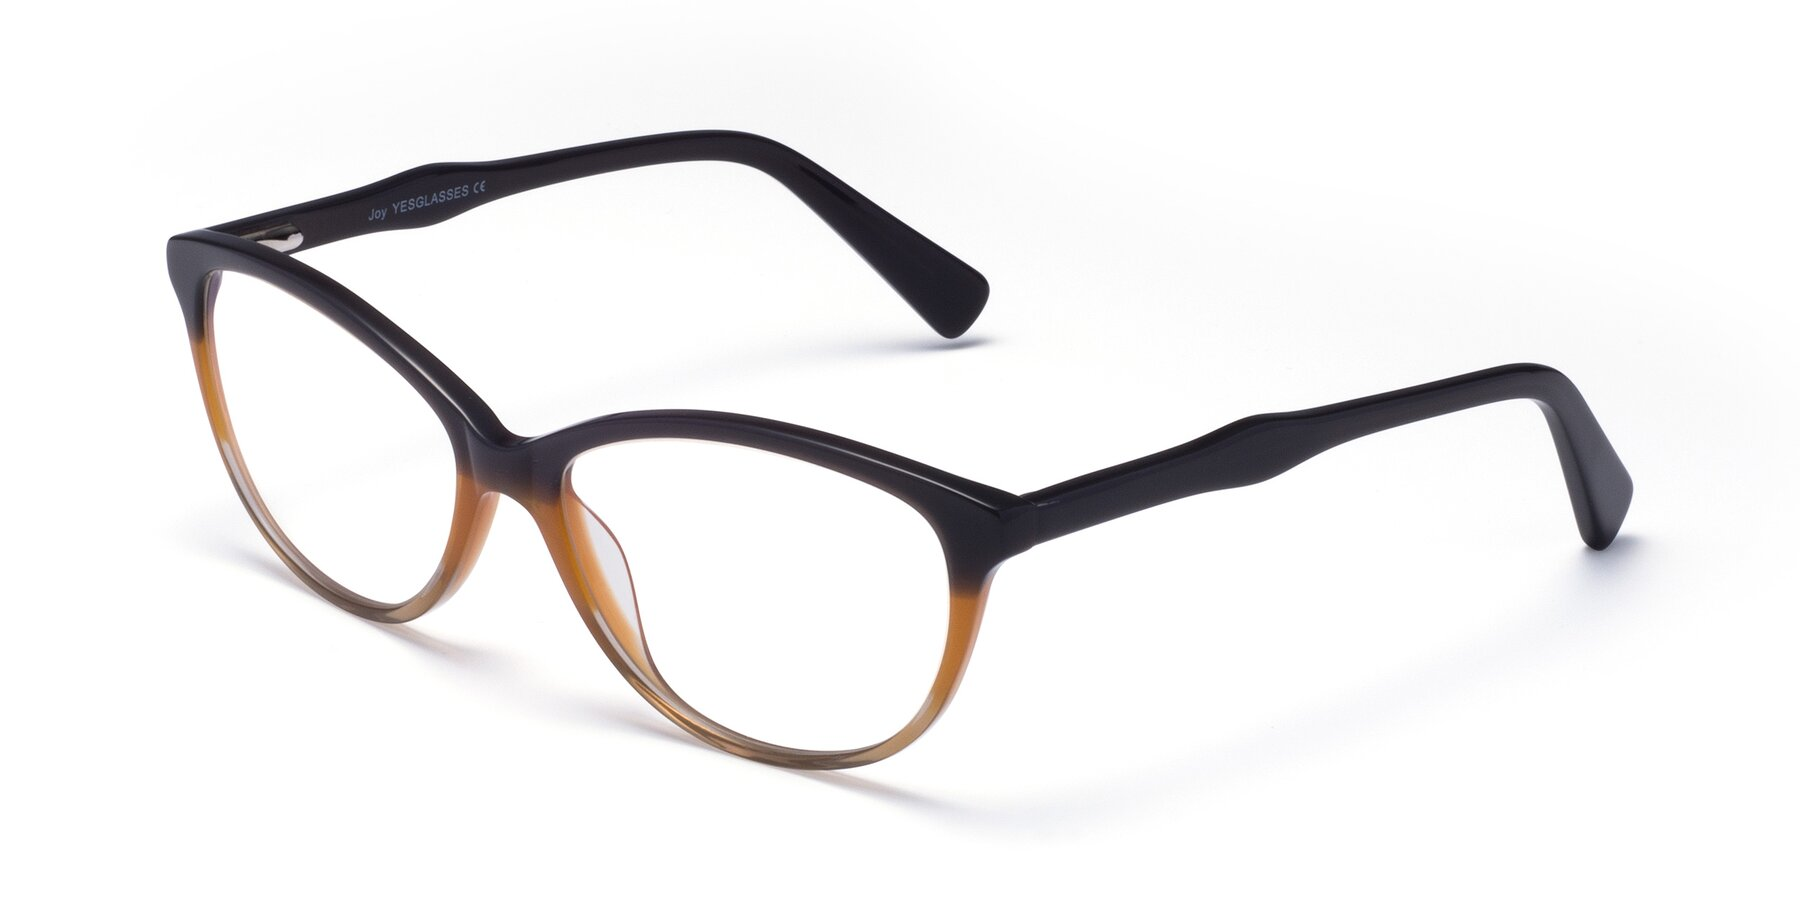 Angle of Joy in Floral Gray-Brown with Clear Blue Light Blocking Lenses